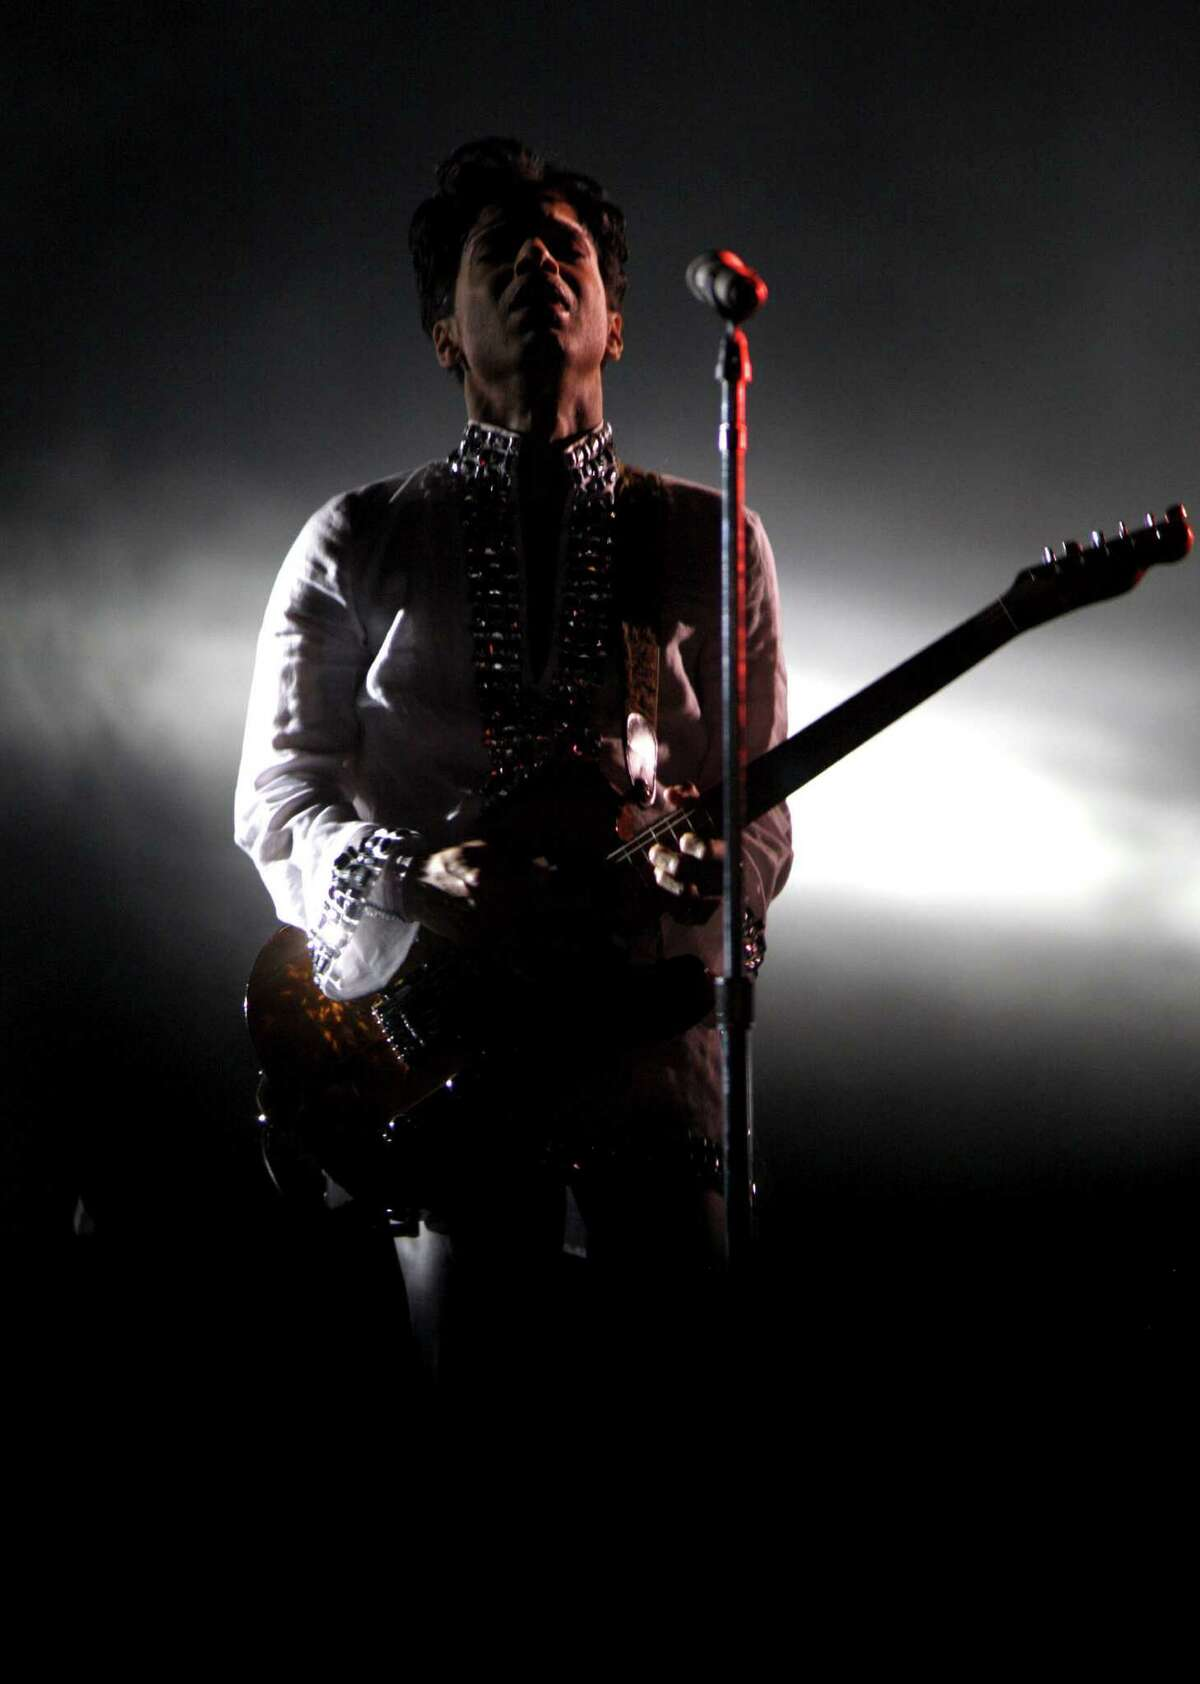 Prince performs at the Coachella Music And Arts Festival on April 26, 2008 at Empire Polo Grounds in Indio, California. (Photo by Barry Brecheisen/WireImage)